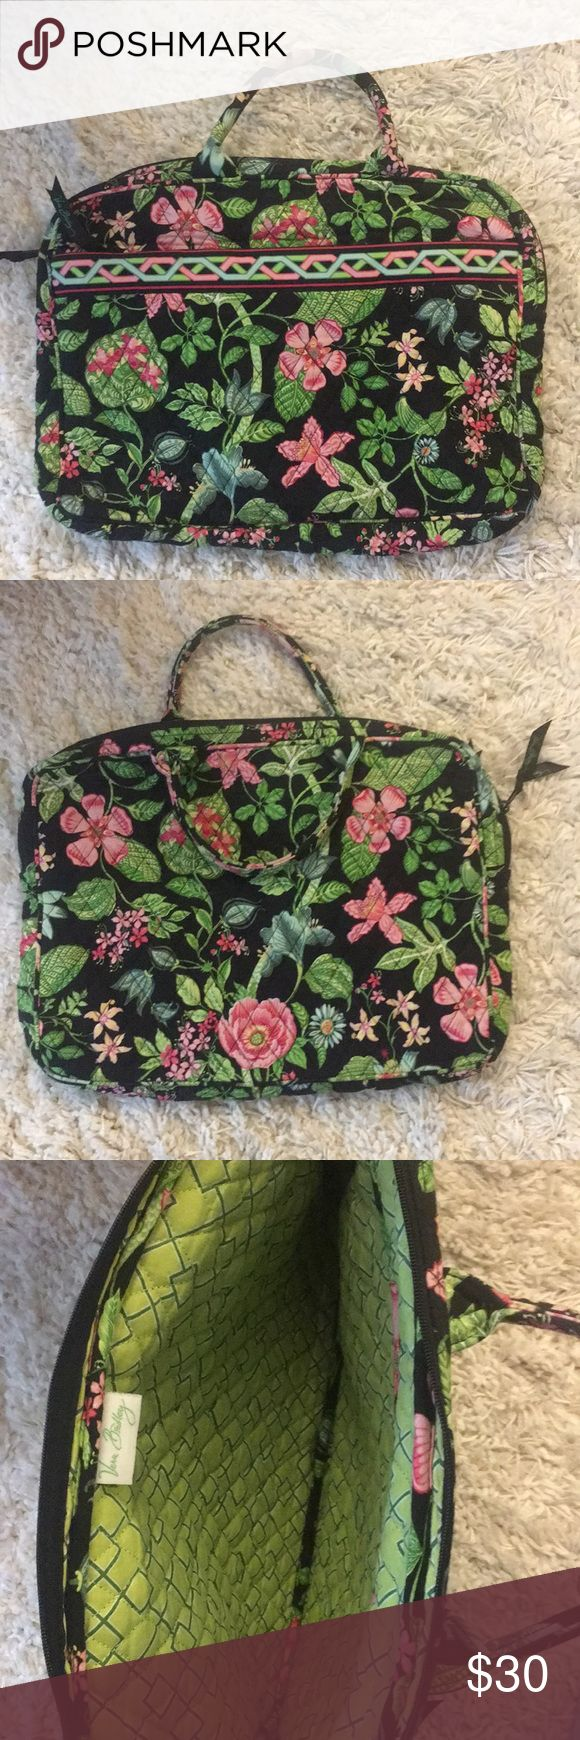 """Vera Bradley laptop carrier bag Adorable quilted laptop bag with front zip pocket. EUC!  Dimensions: 16"""" x 12"""" - fits up to a 15"""" laptop Vera Bradley Bags Laptop Bags"""